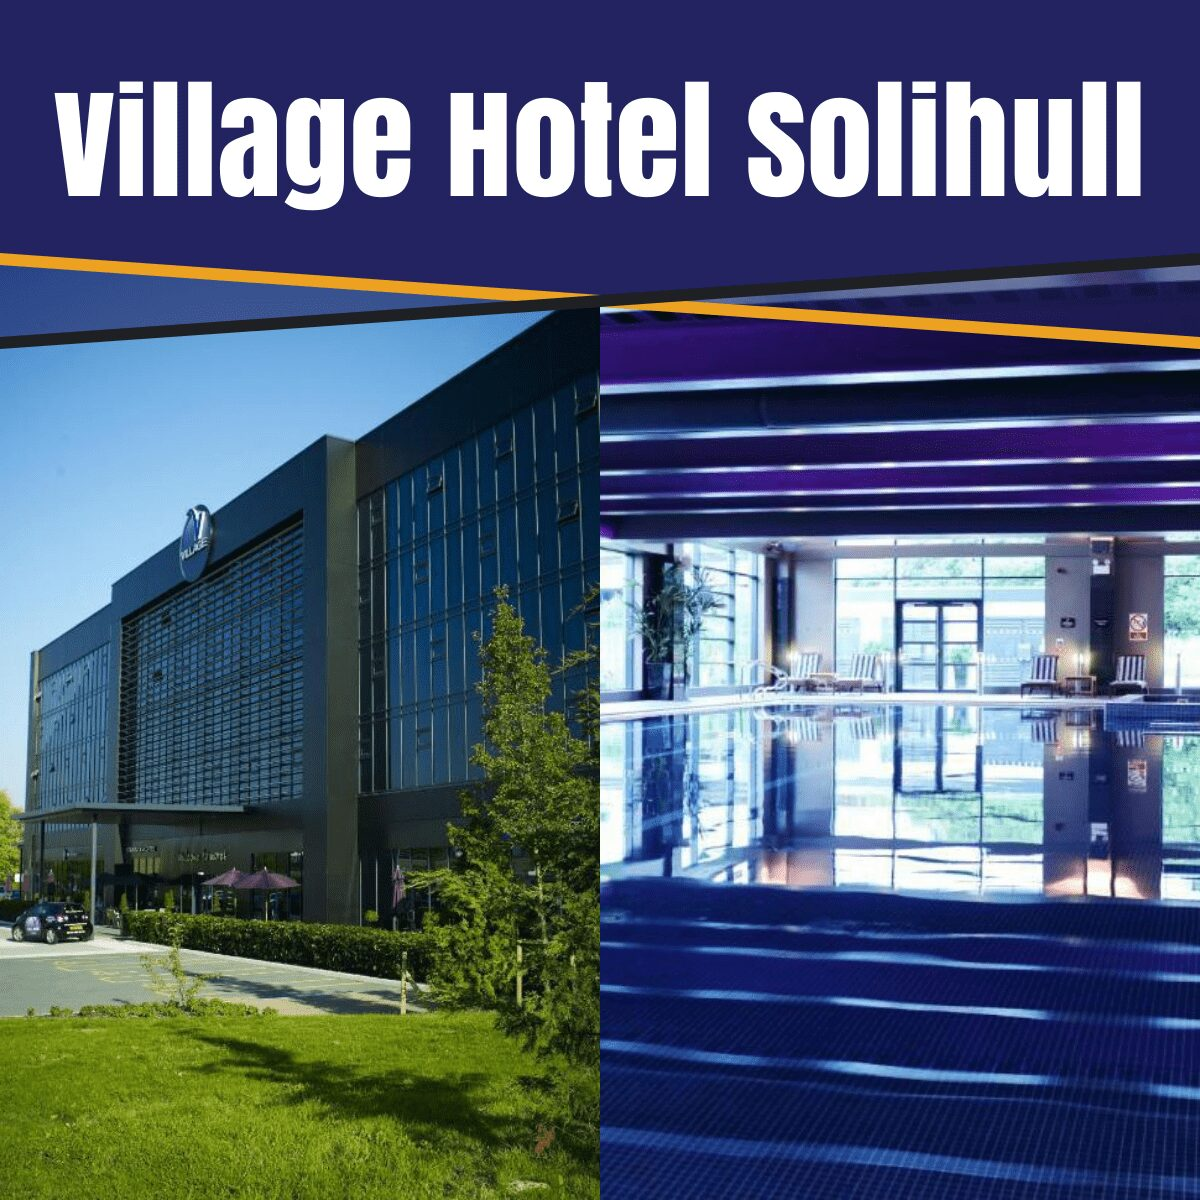 village hotel solihull the professional traveller